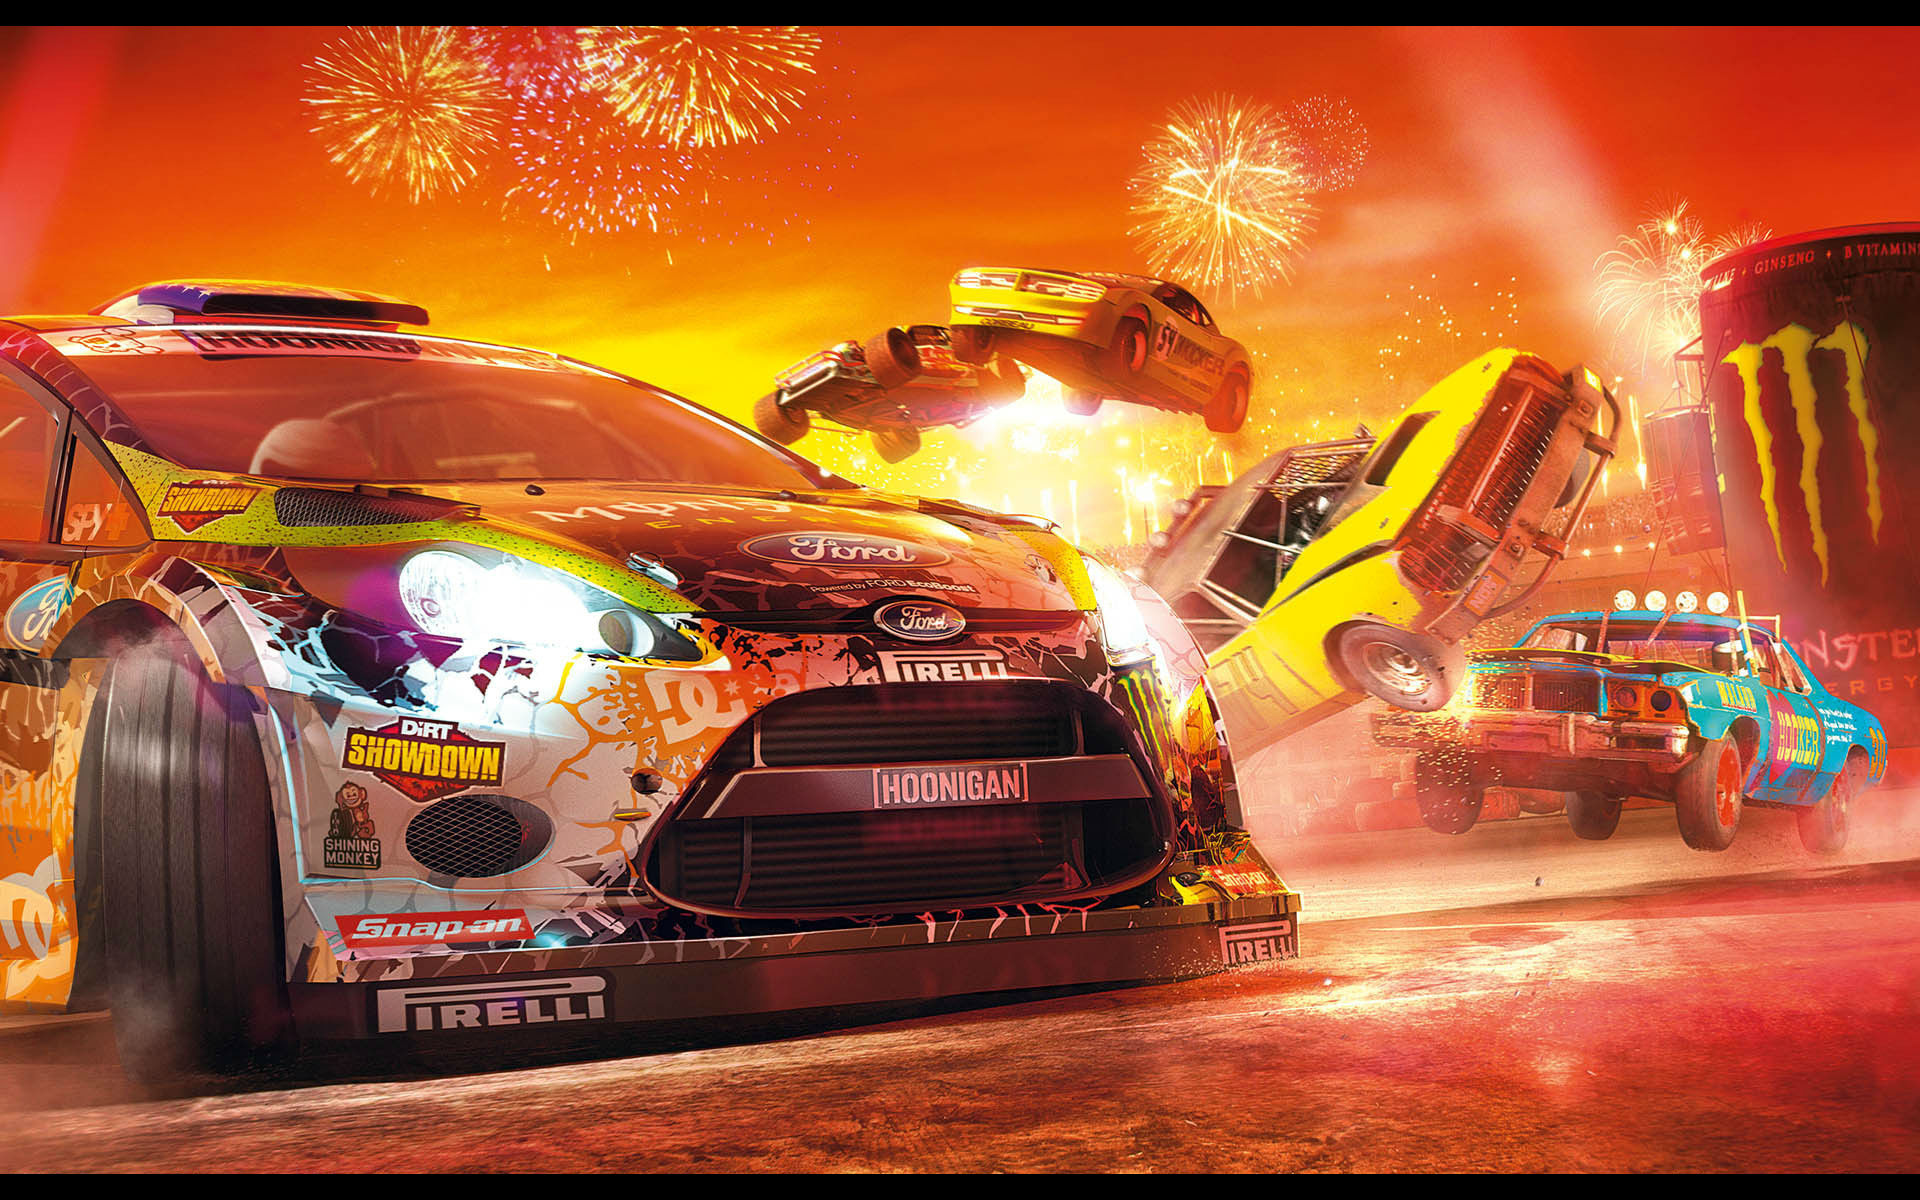 Quotes In Italian Wallpaper 5 Dirt Showdown Hd Wallpapers Backgrounds Wallpaper Abyss